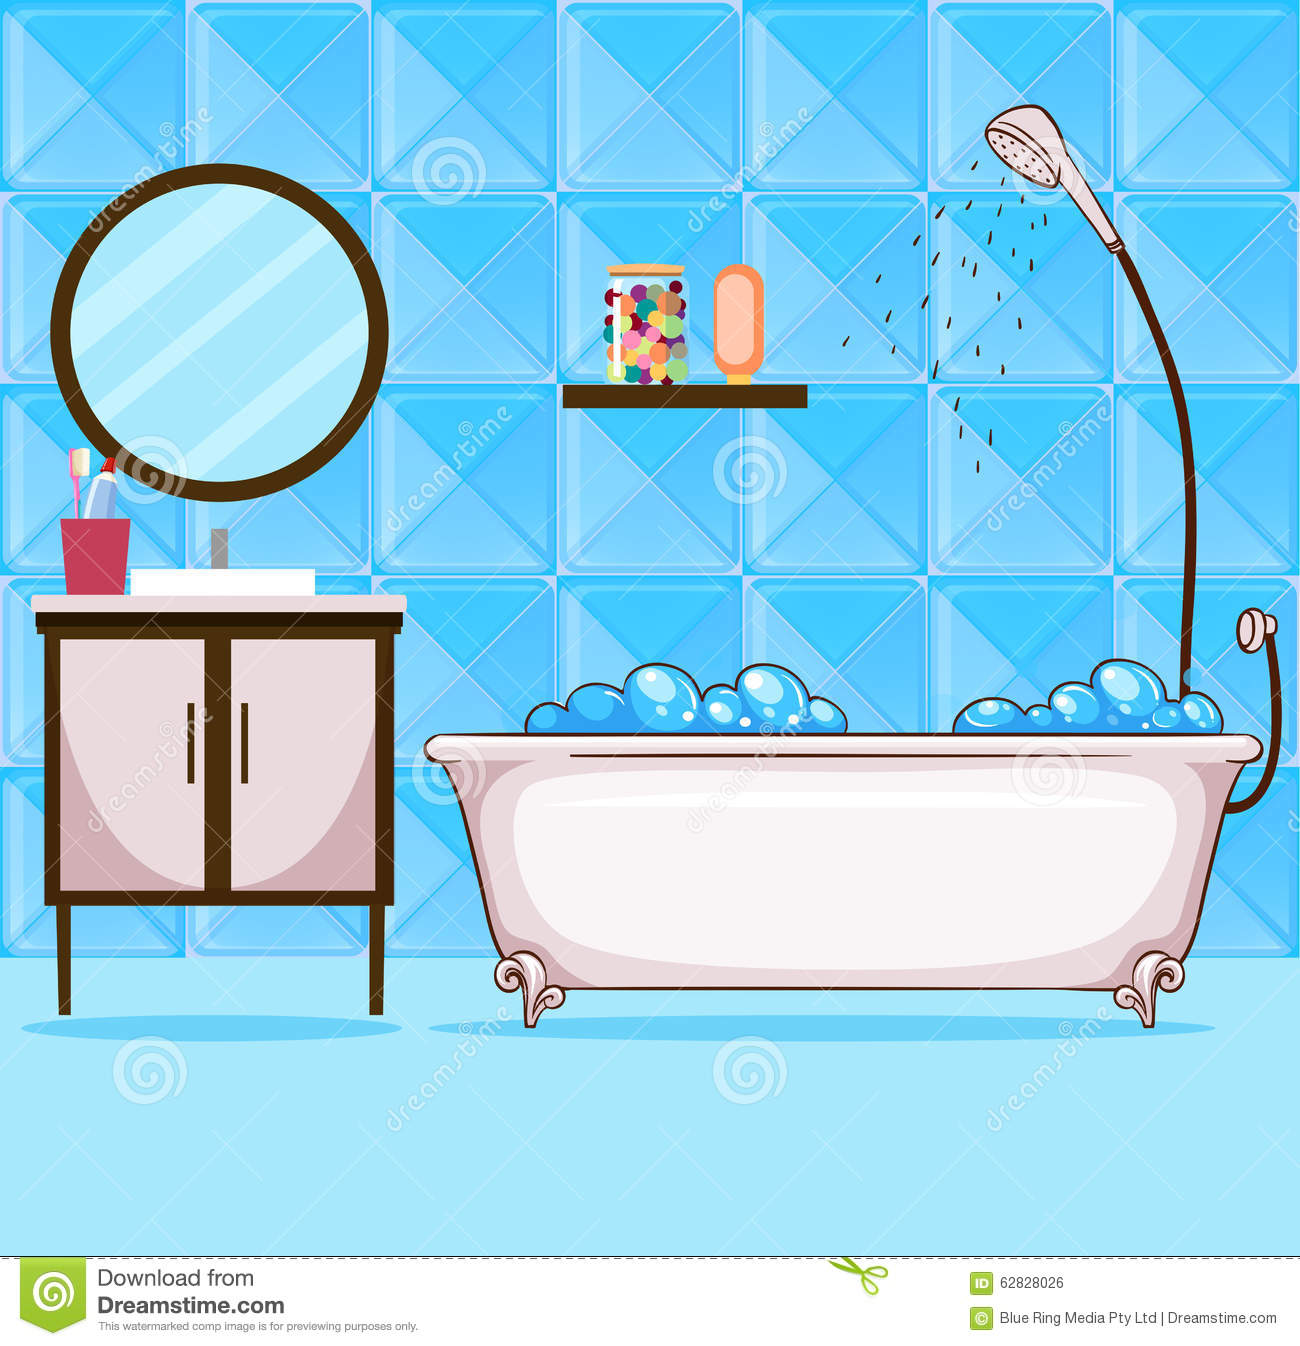 Bathroom With Bathtub And Shower Stock Vector - Illustration of blue ...